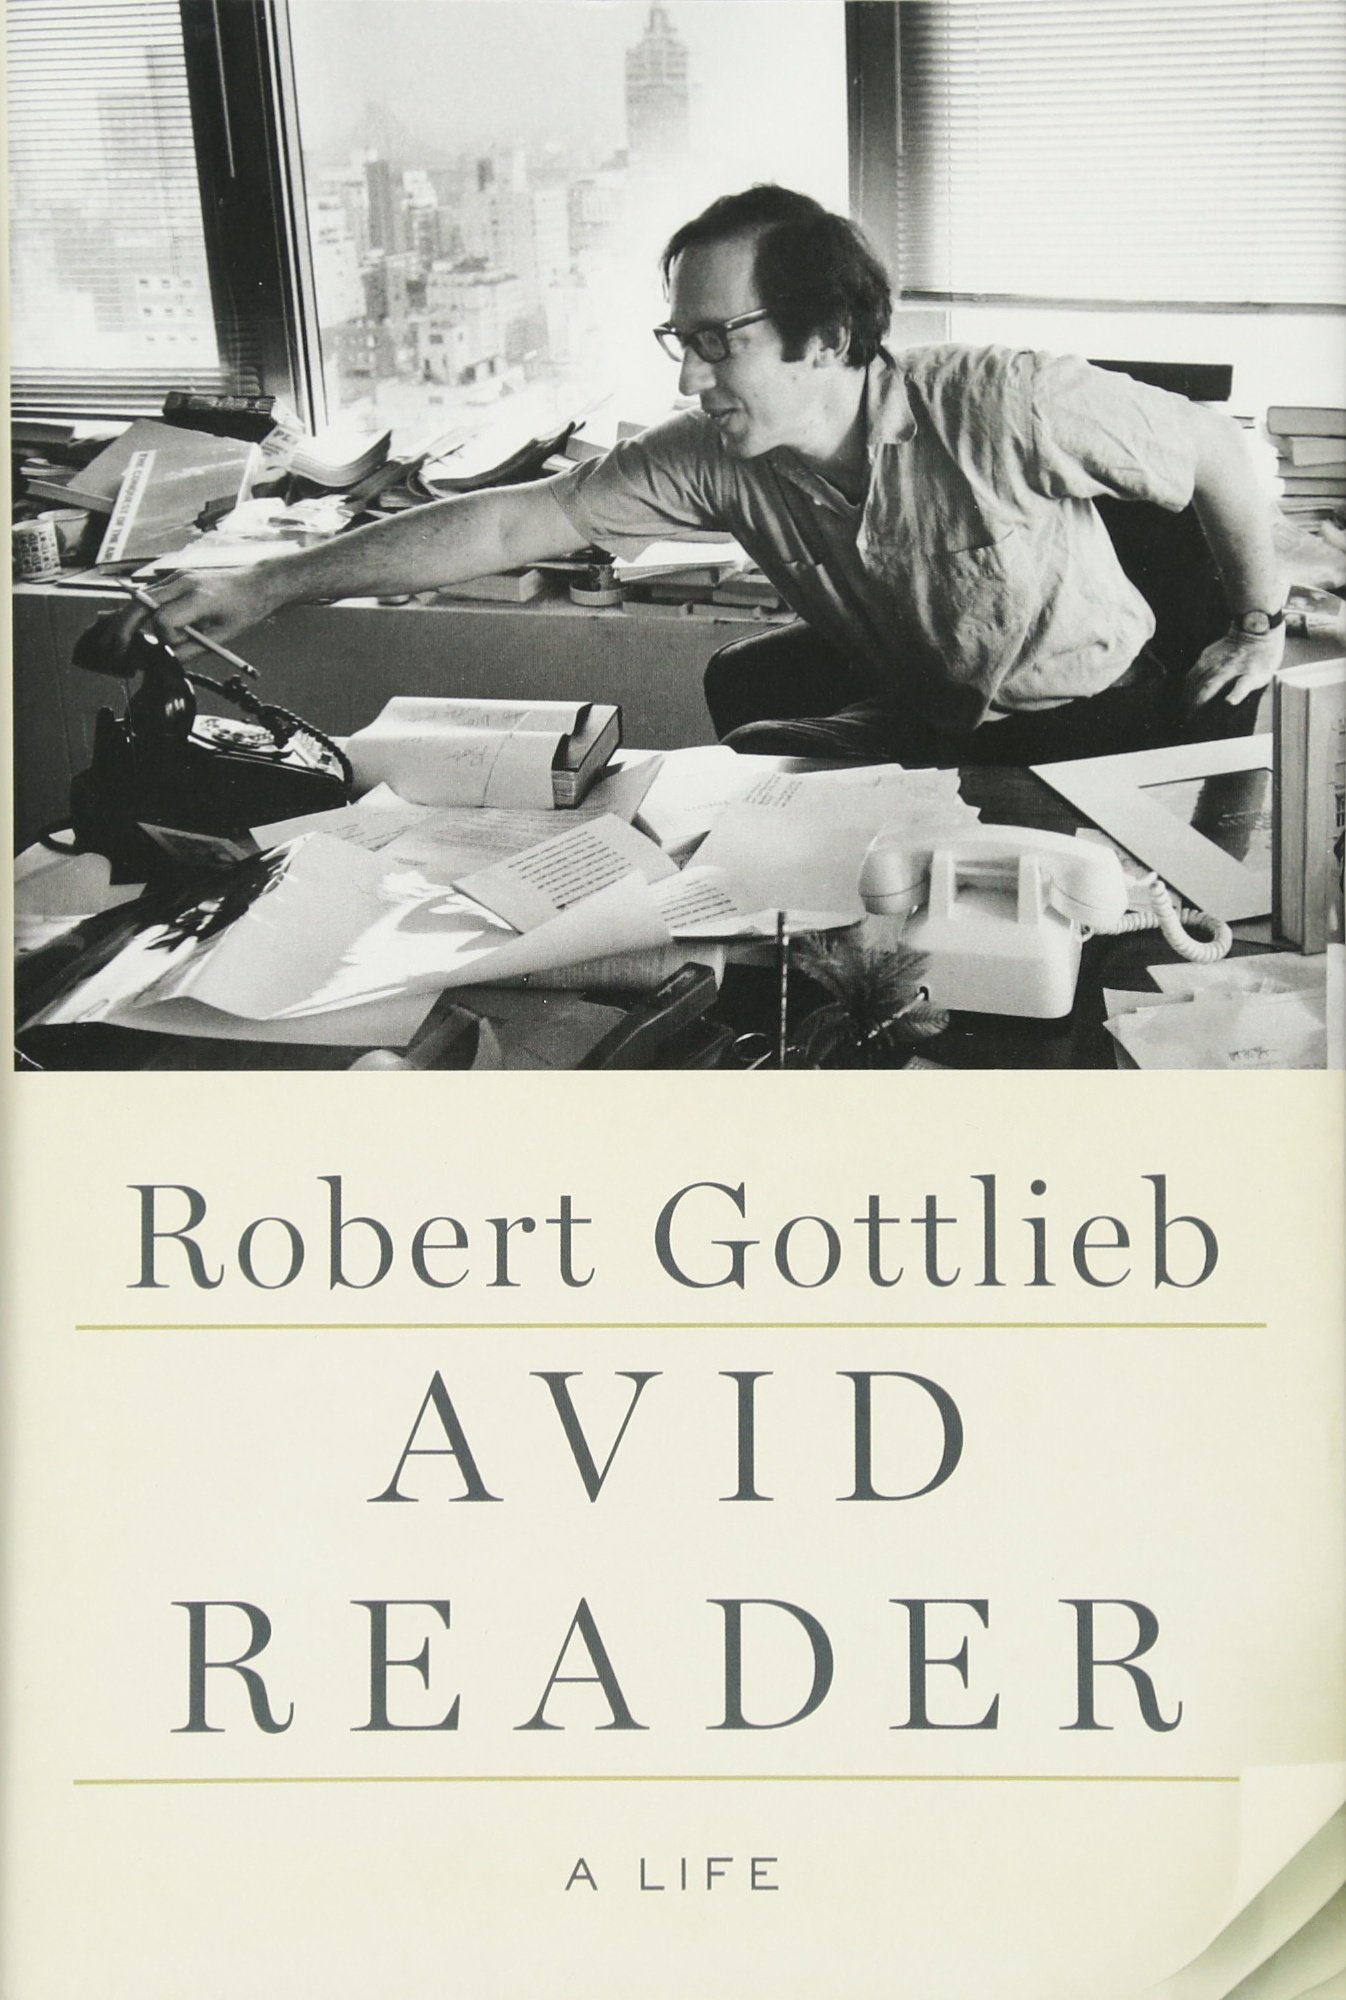 Avid Reader Life Robert Gottlieb product image